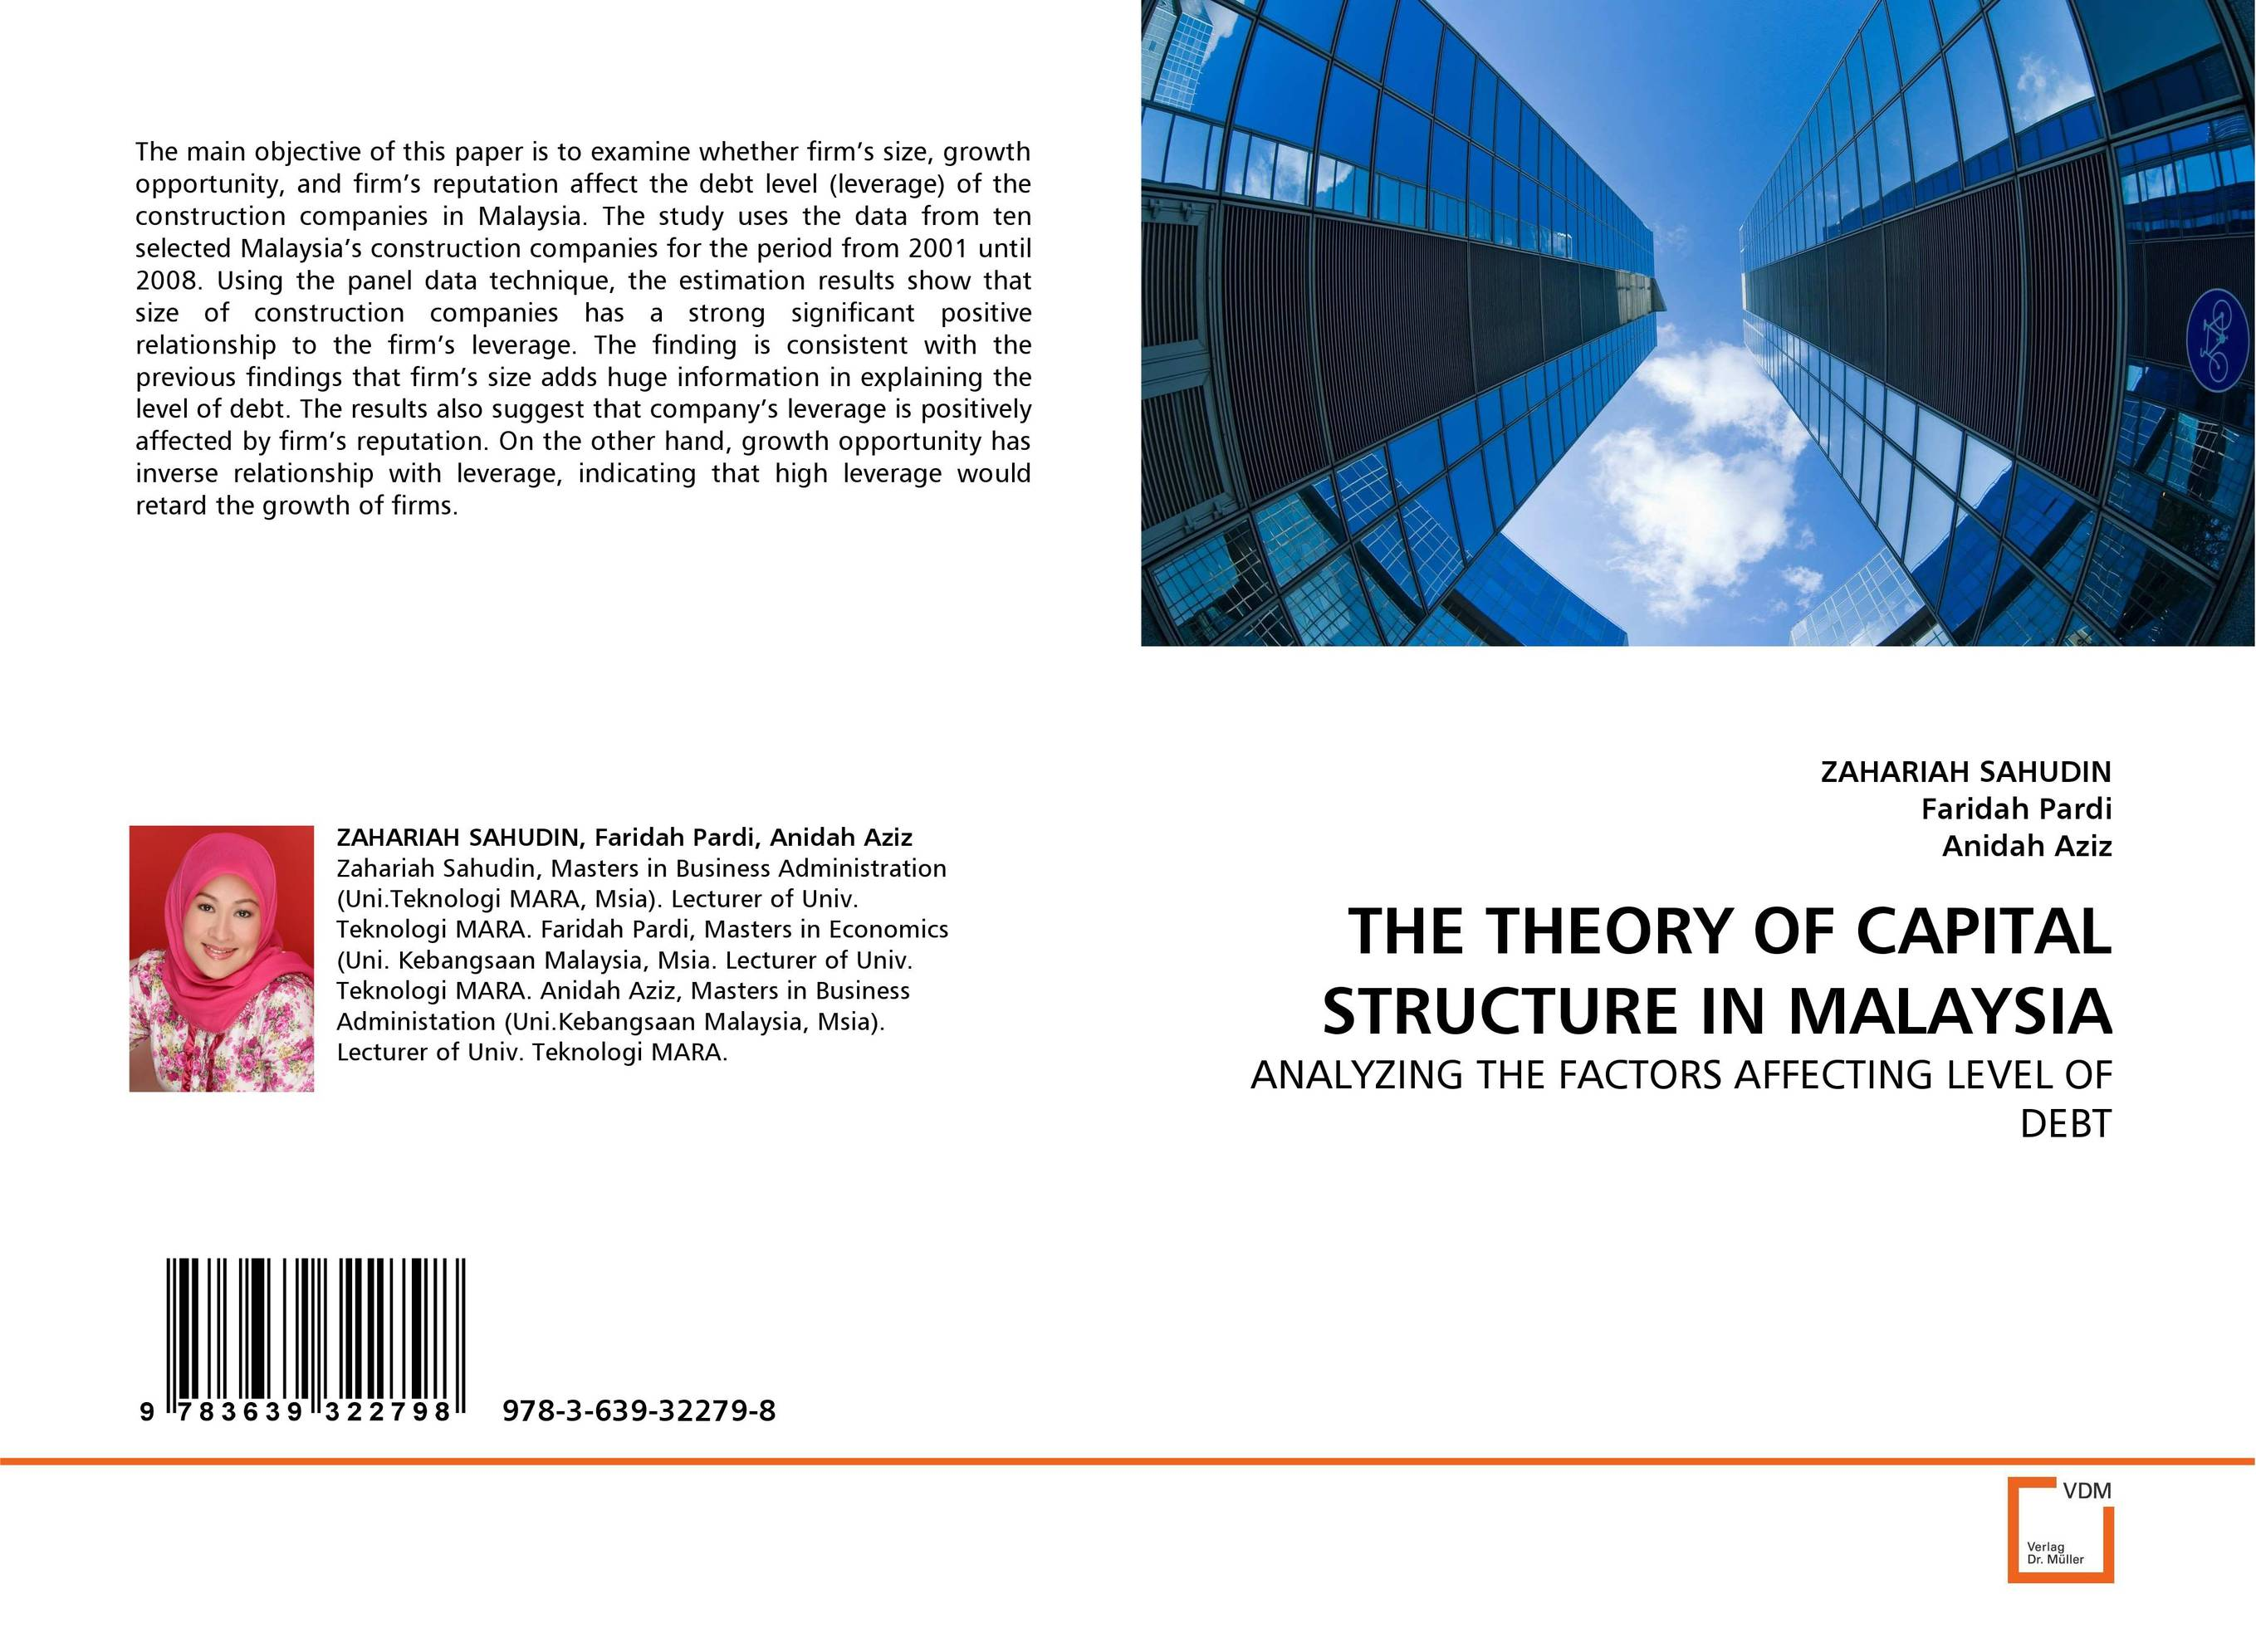 THE THEORY OF CAPITAL STRUCTURE IN MALAYSIA david rose s the startup checklist 25 steps to a scalable high growth business